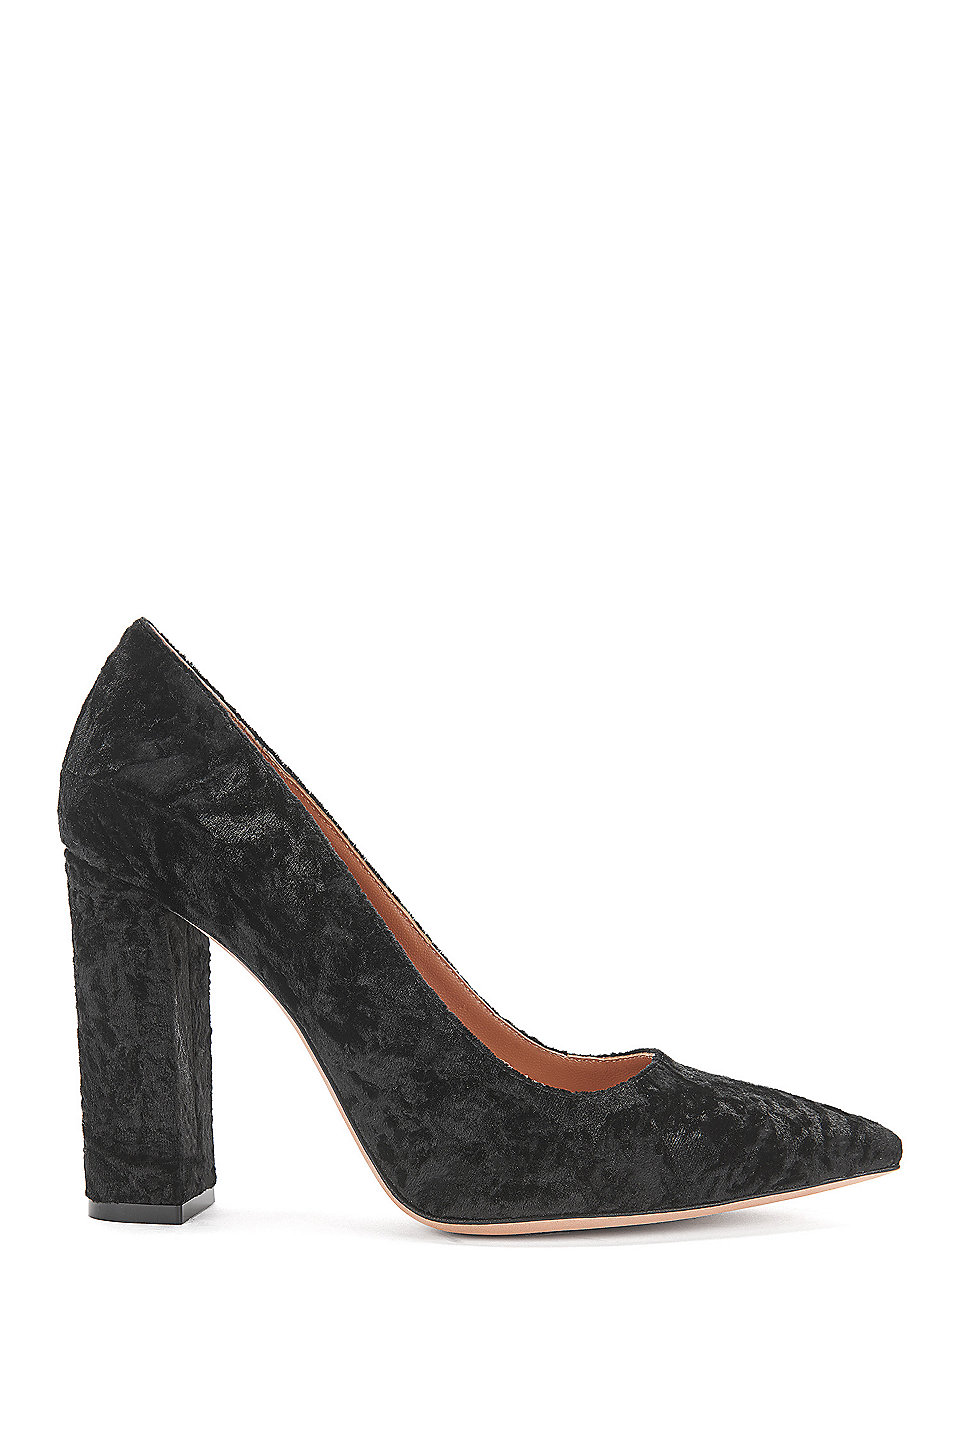 Hugo BOSS Tacco Alto Nero Businesslook da donna tg. de 38 PELLE PUMPS